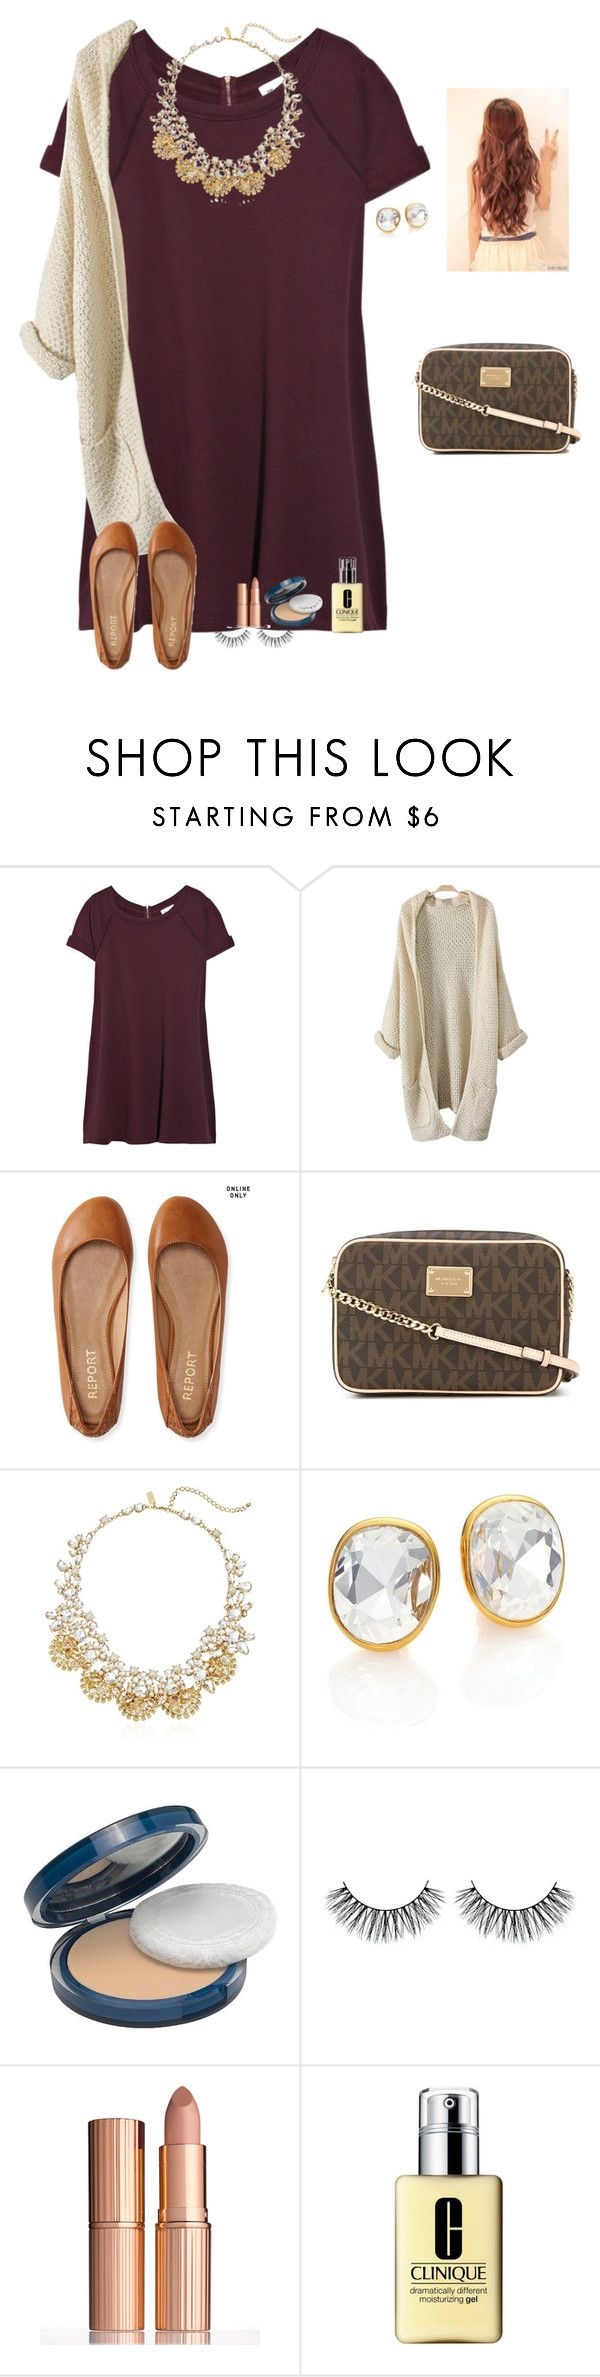 """Day 7: Christmas dinner+opening presents"" by raquate1232 ❤ liked on Polyvore featuring Vanessa Bruno, Aéropostale, MICHAEL Michael Kors, Kate Spade, Kenneth Jay Lane, COVERGIRL, Charlotte Tilbury, Clinique and KarinasChristmas2k16"